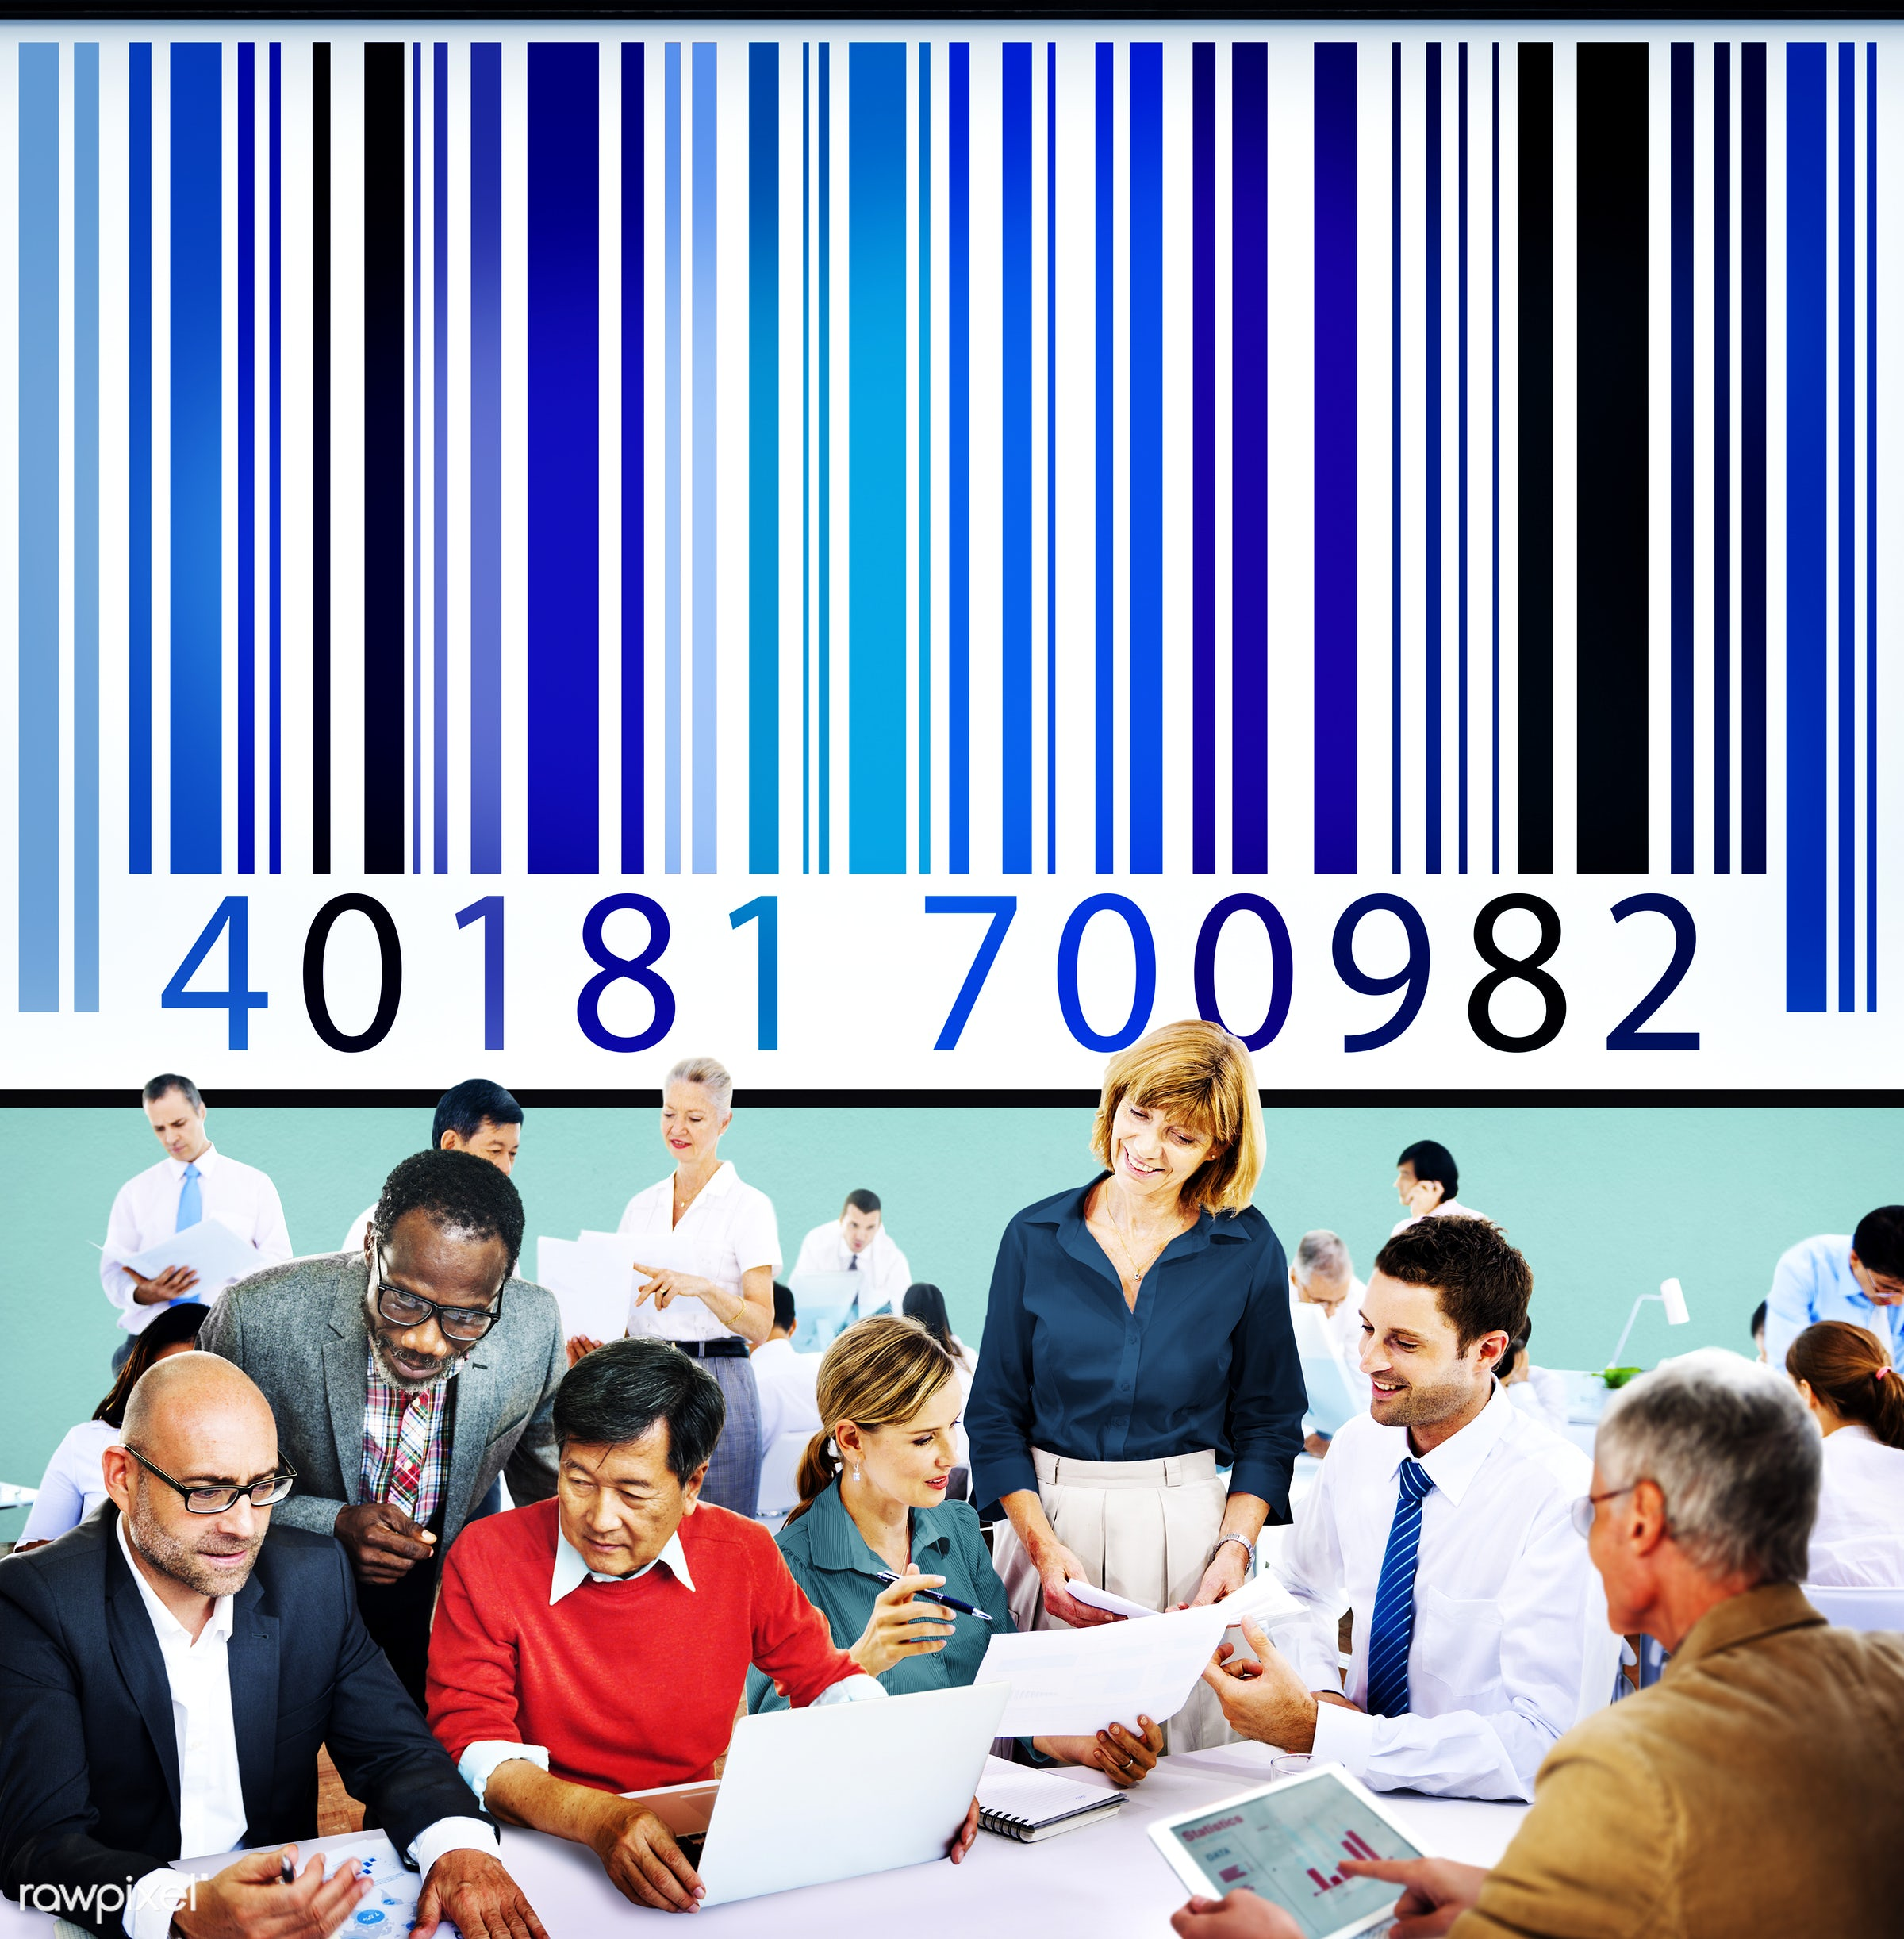 analysis, badge, bar code, bar code reader, business, business people, businessmen, businesswomen, busy, buy, coding,...